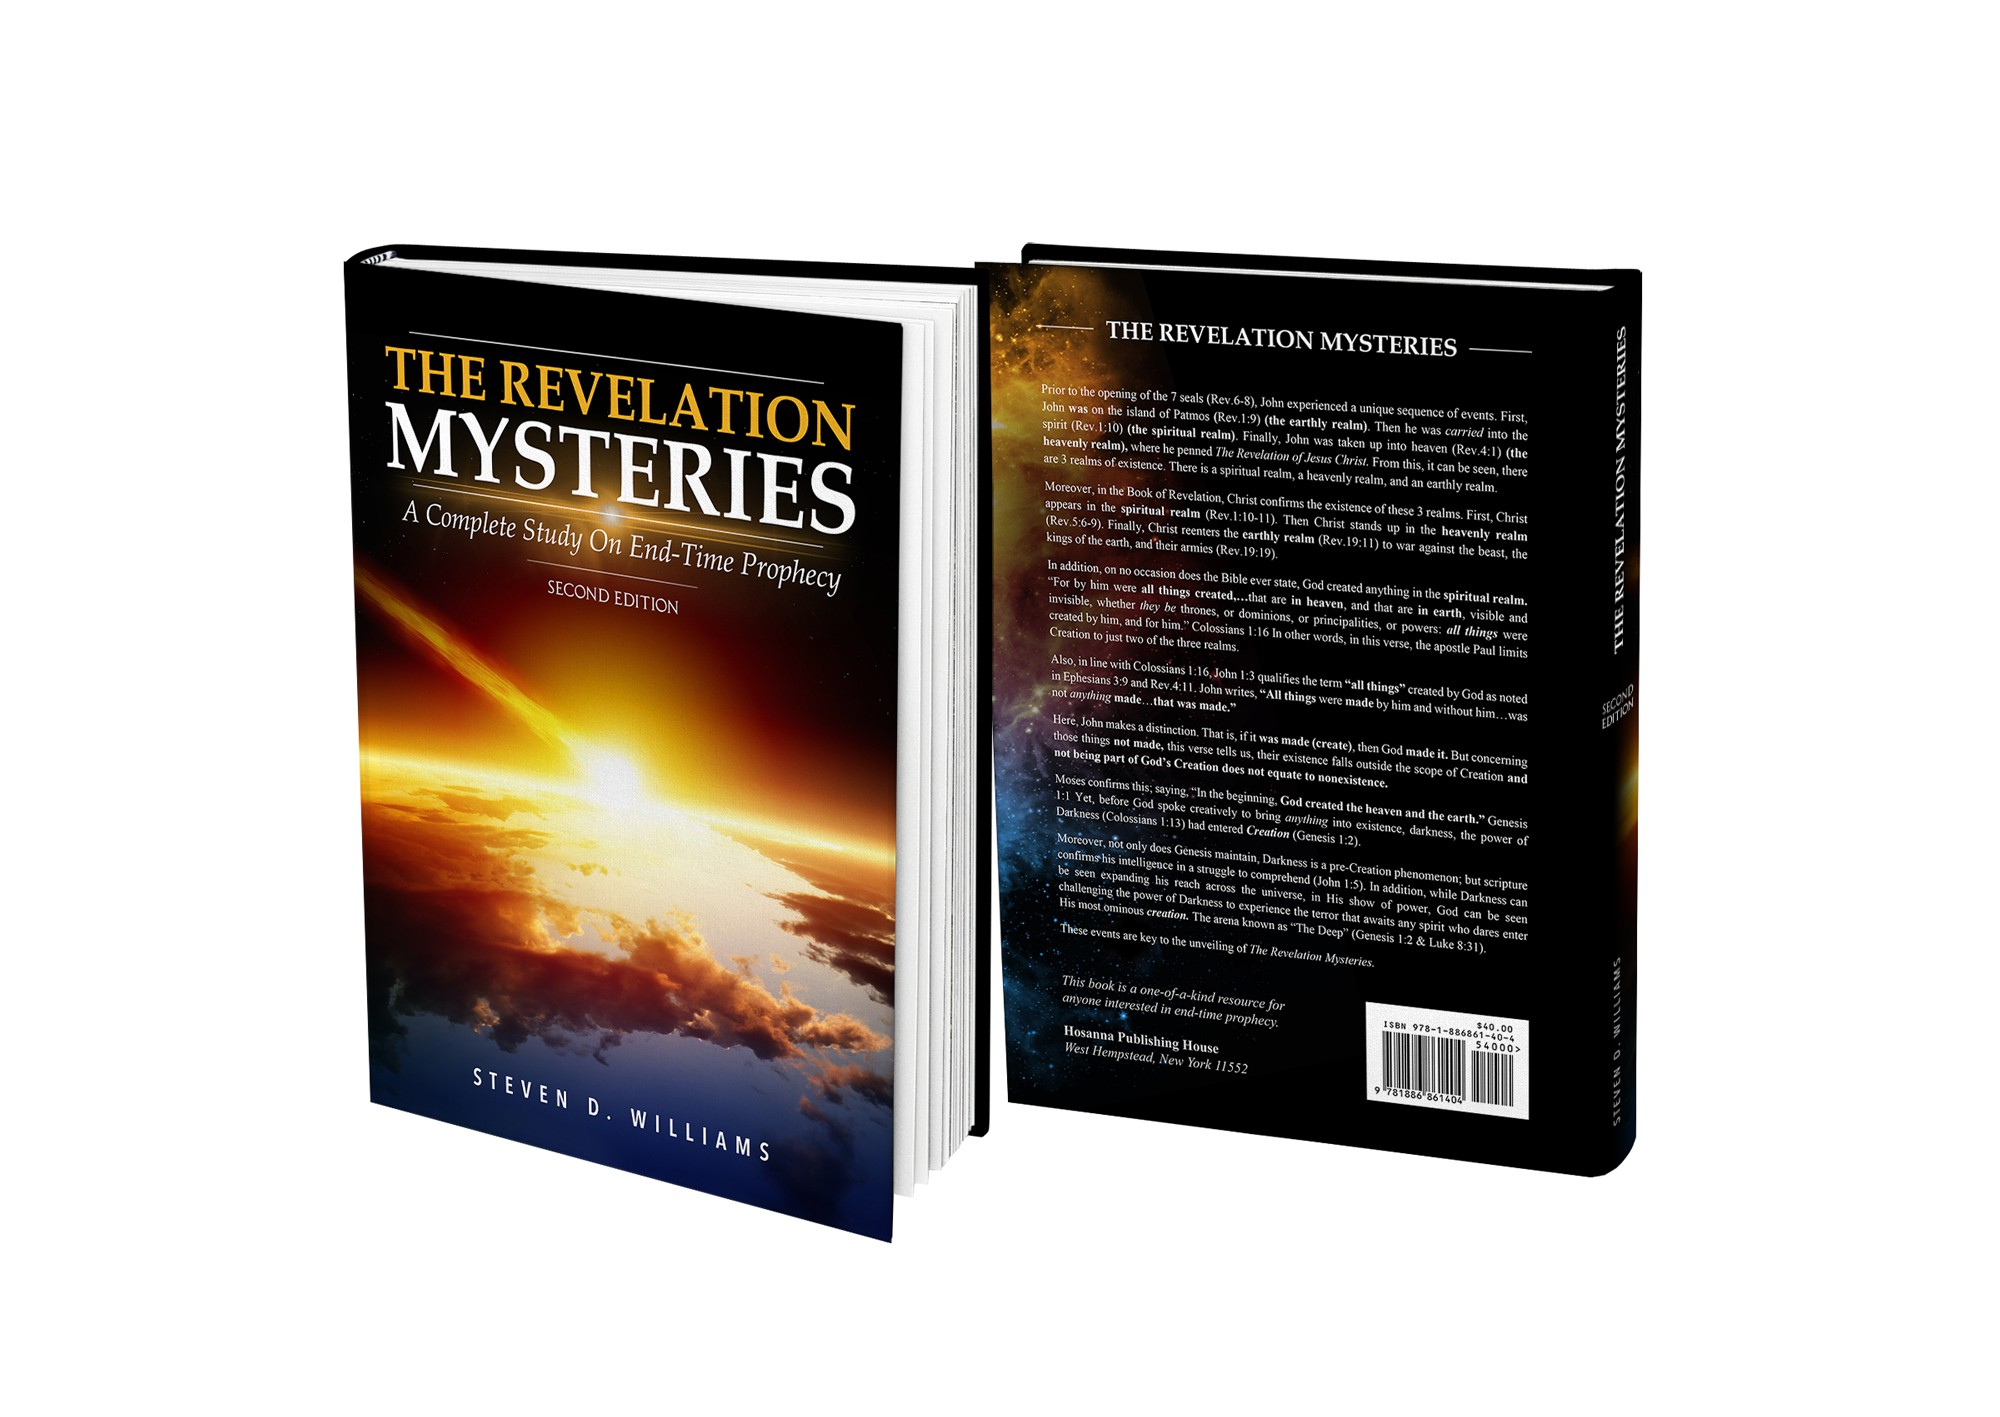 Create a innovation book cover for the apolcyptic book of the Bible - The Book of Revelation